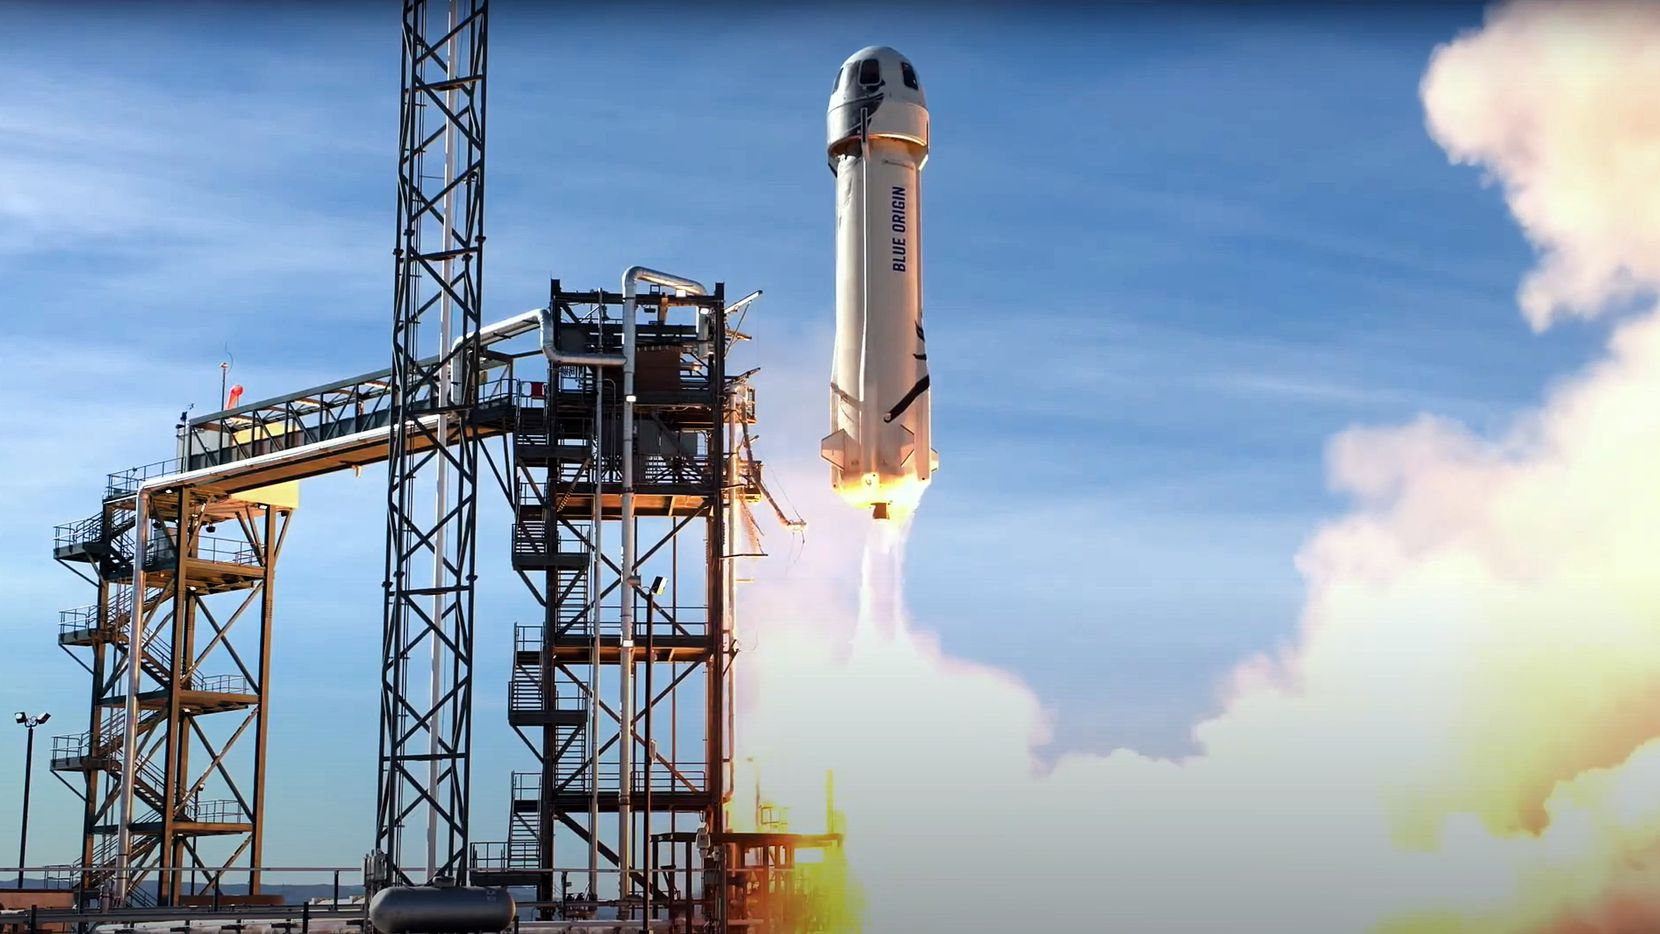 A video frame shows Blue Origin successfully launching its14thmission to space and back on Jan. 14 at the company's launch site in Van Horn.